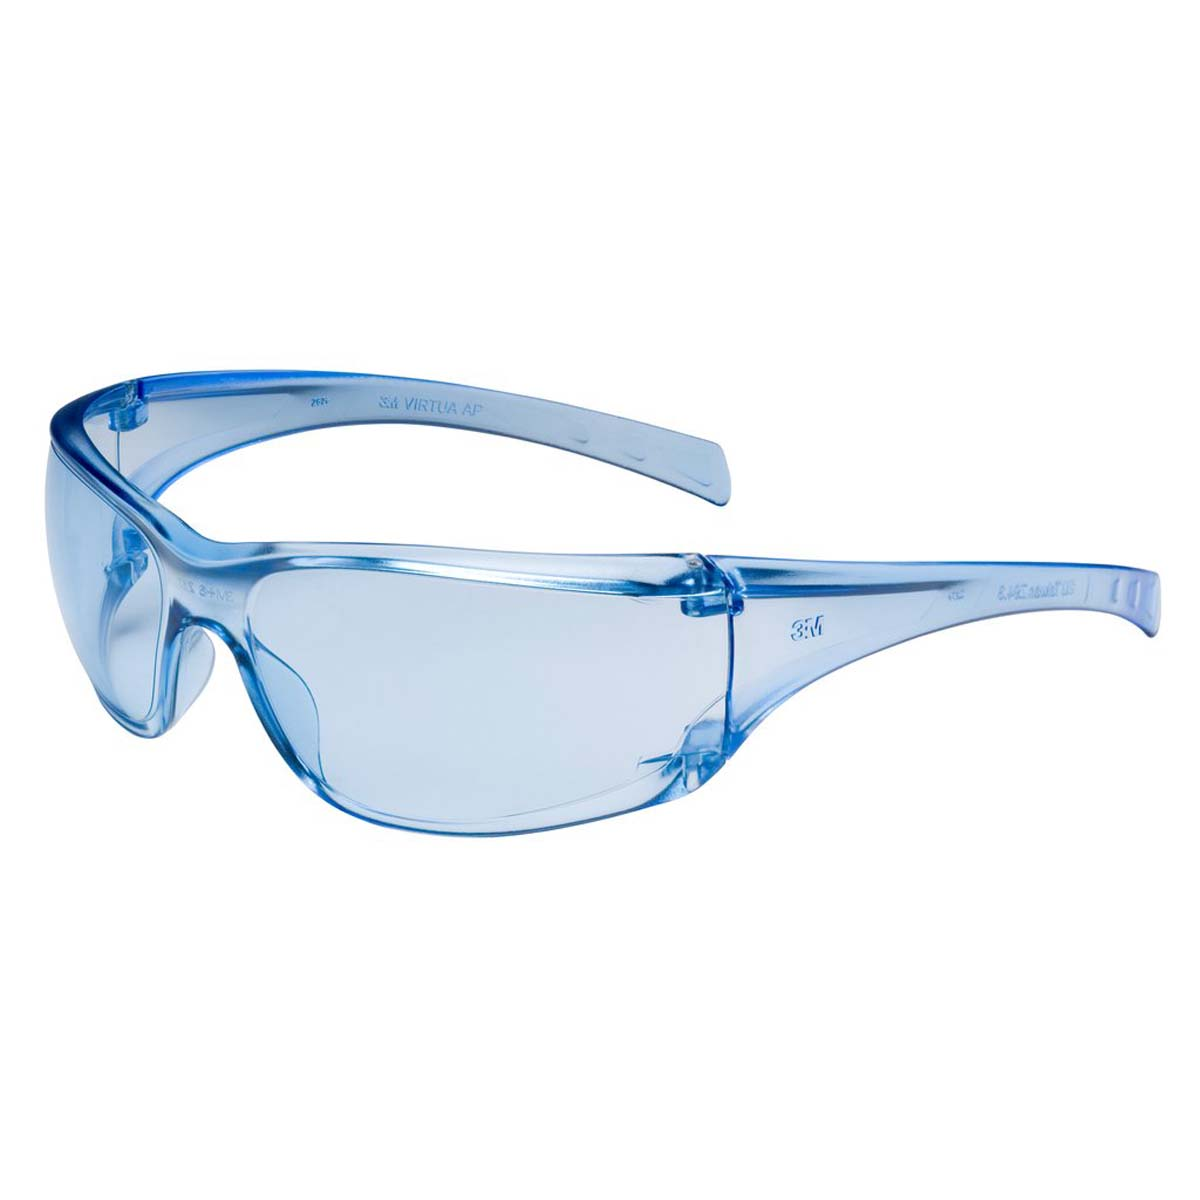 "3Mâ""¢ Virtuaâ""¢ AP Protective Eyewear 11816-00000-20 Light Blue Hard Coat Lens,"